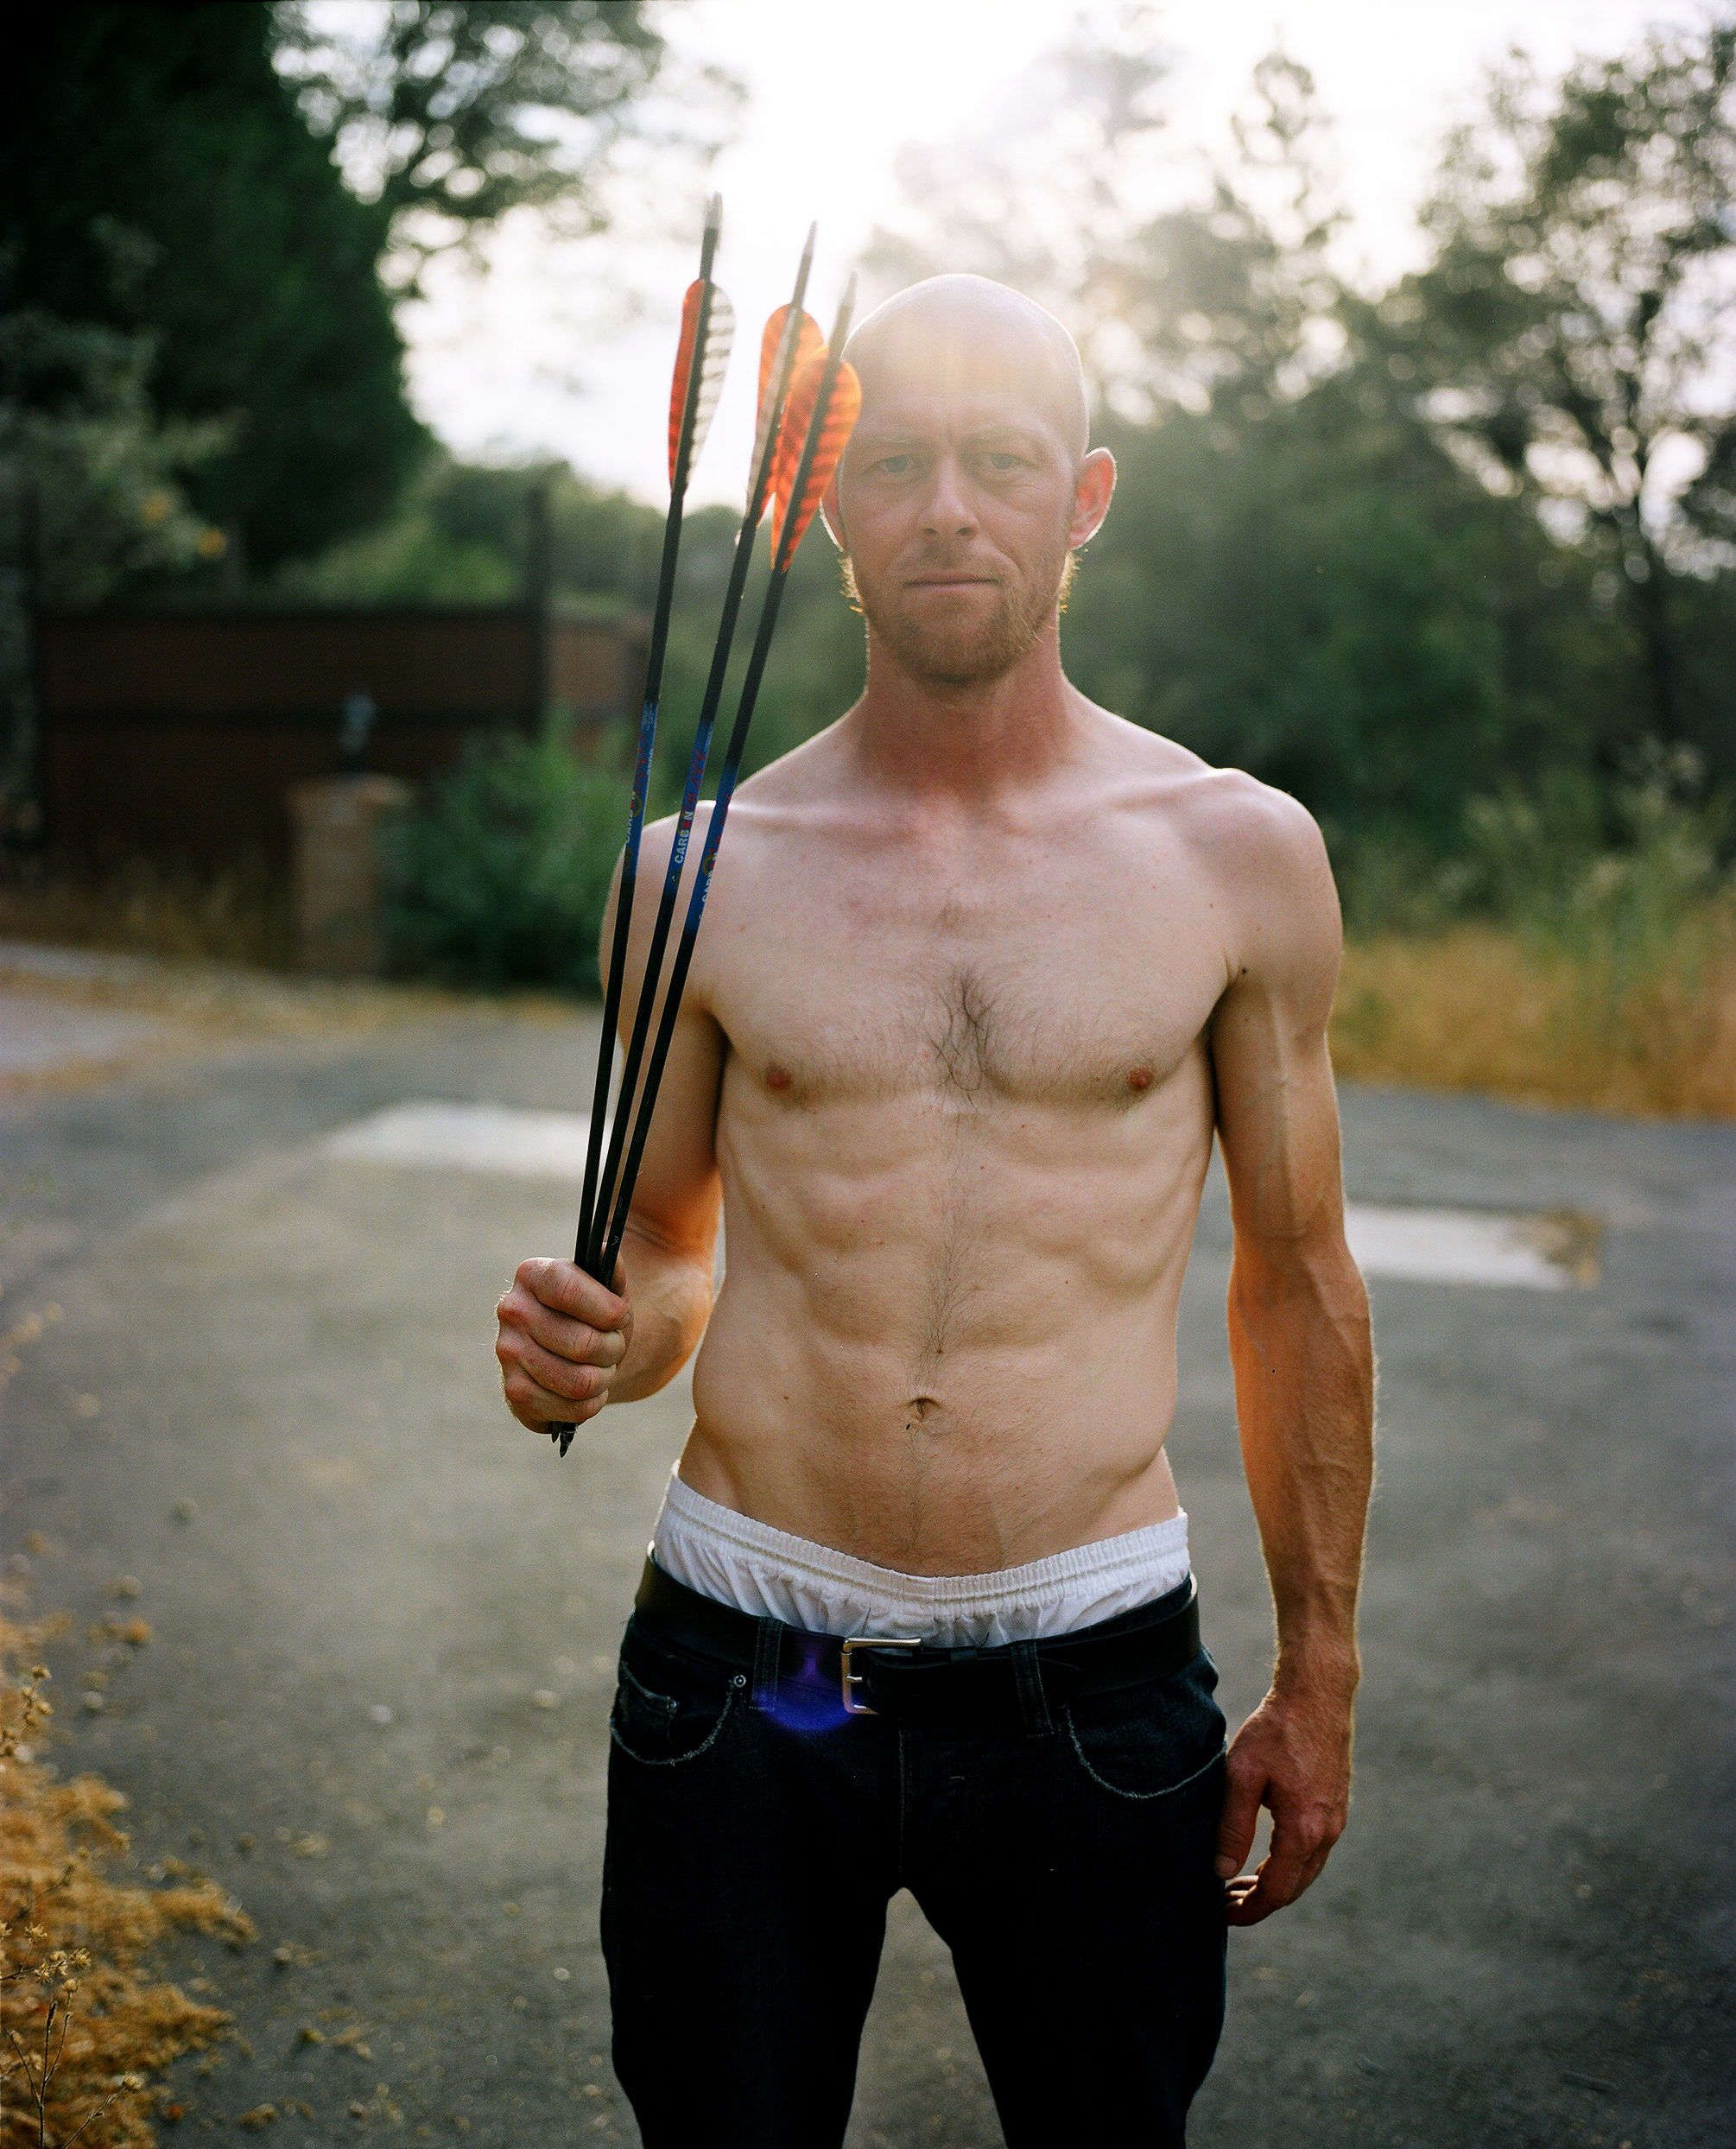 Marc Johnson, Big Bear, CA 2010